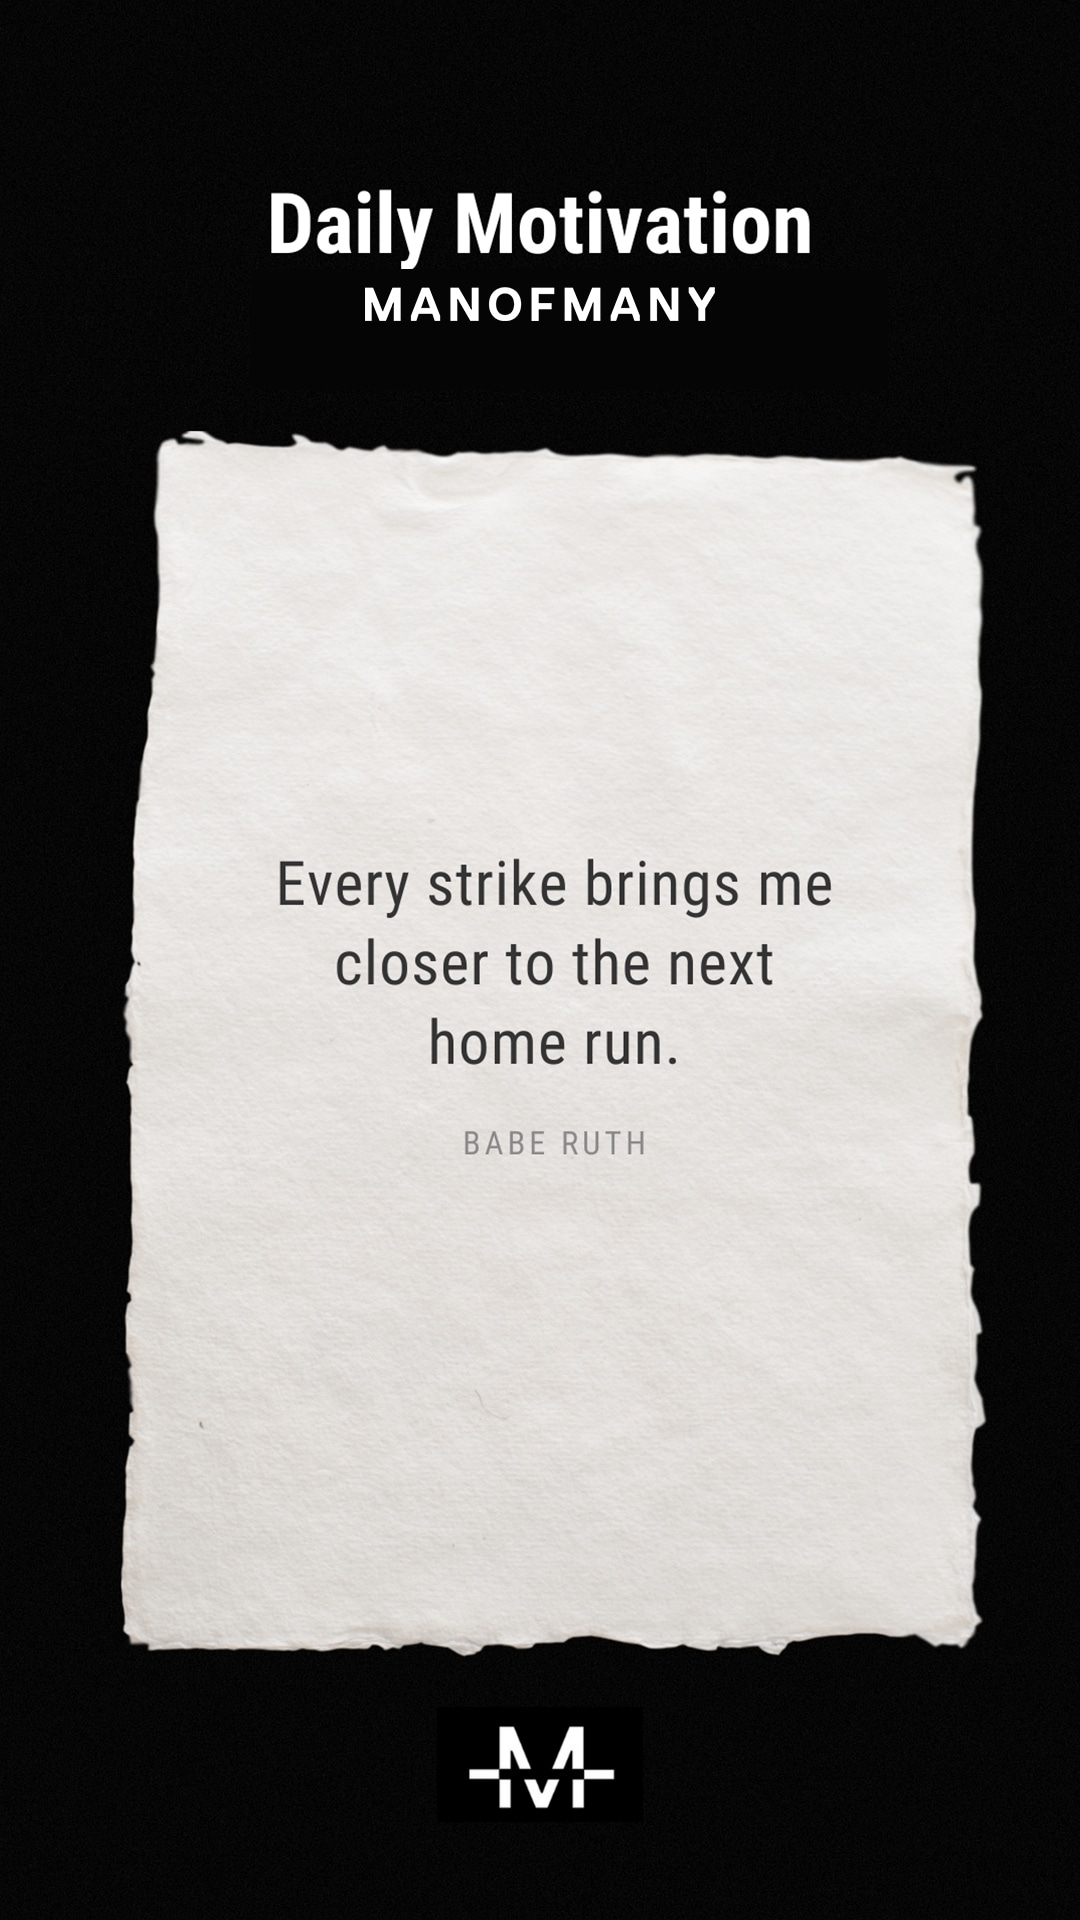 Every strike brings me closer to the next home run - Babe Ruth quote